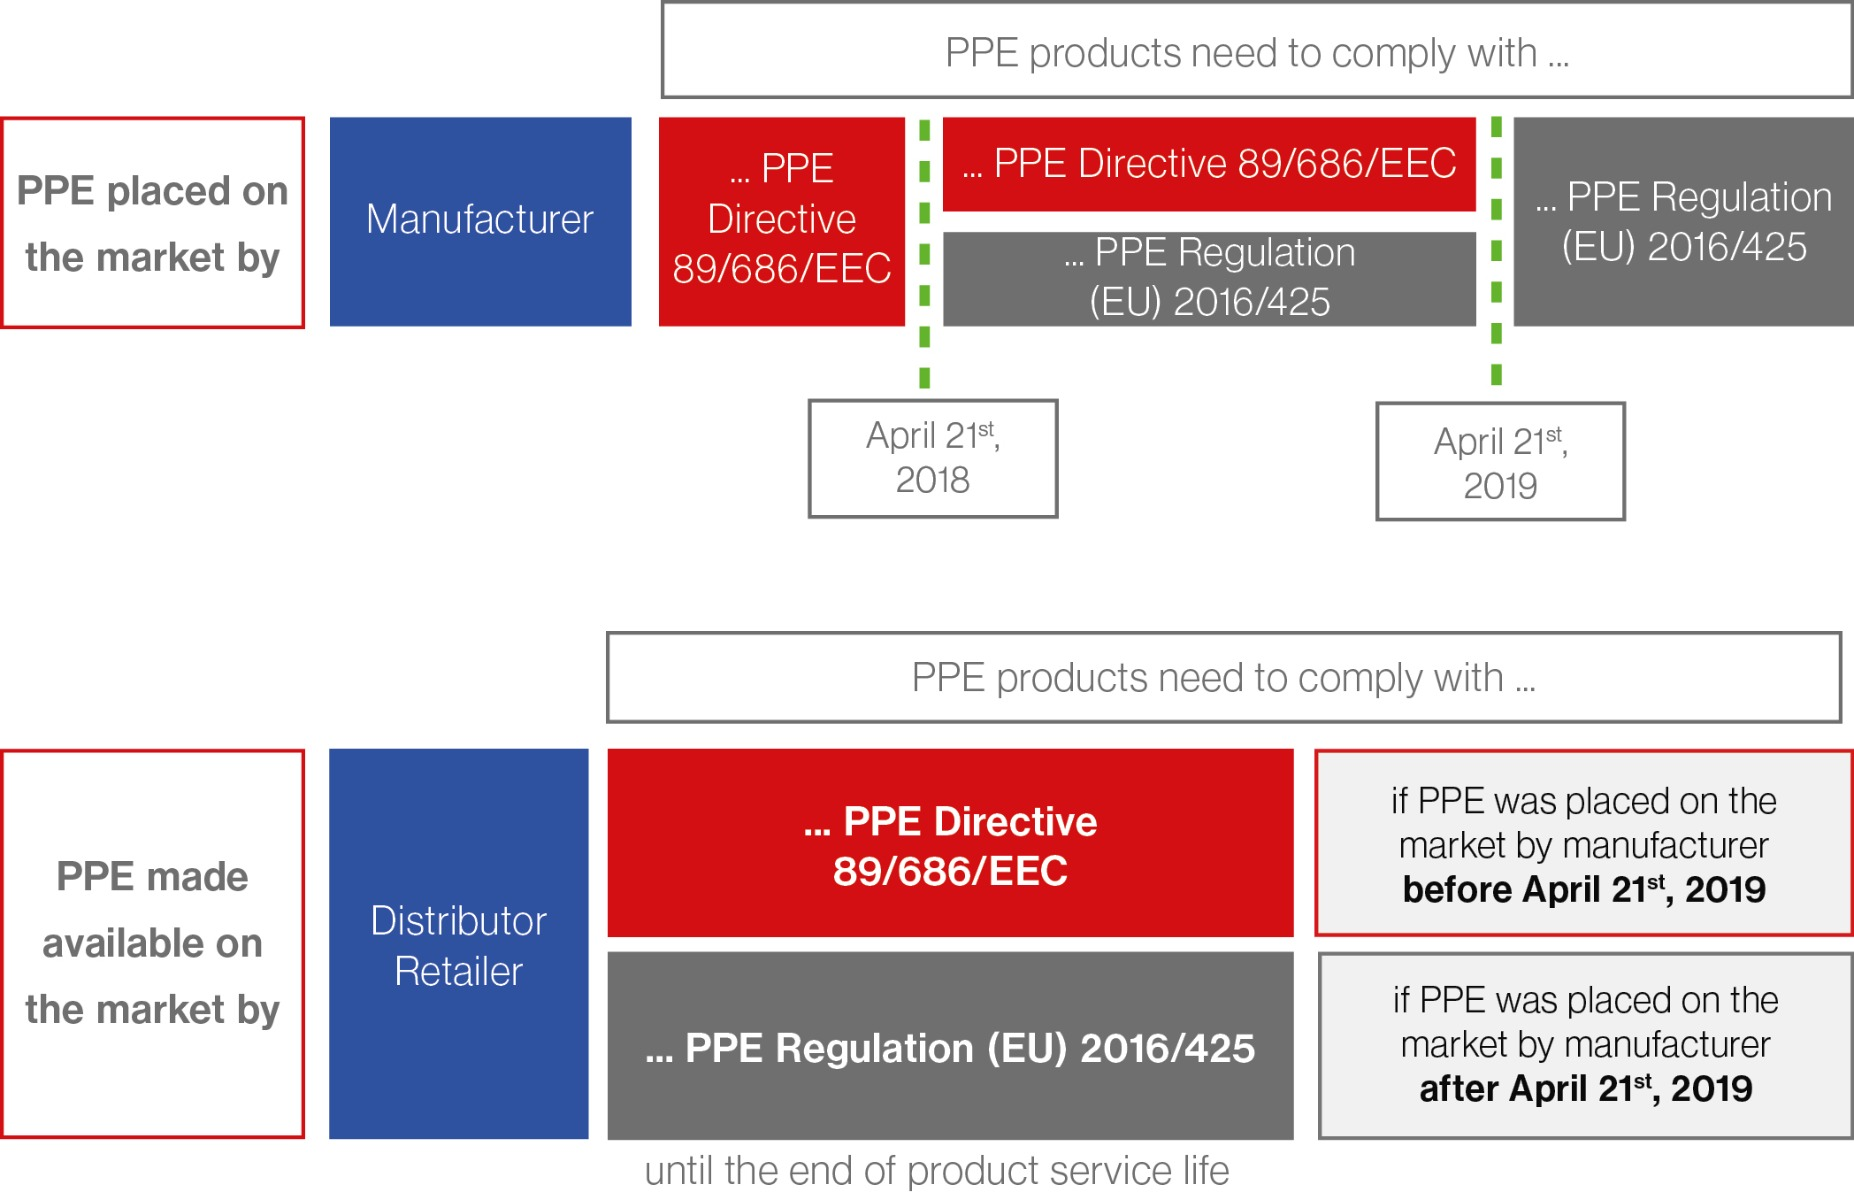 PPE-Regulation (EU) 2016/425 | Teufelberger